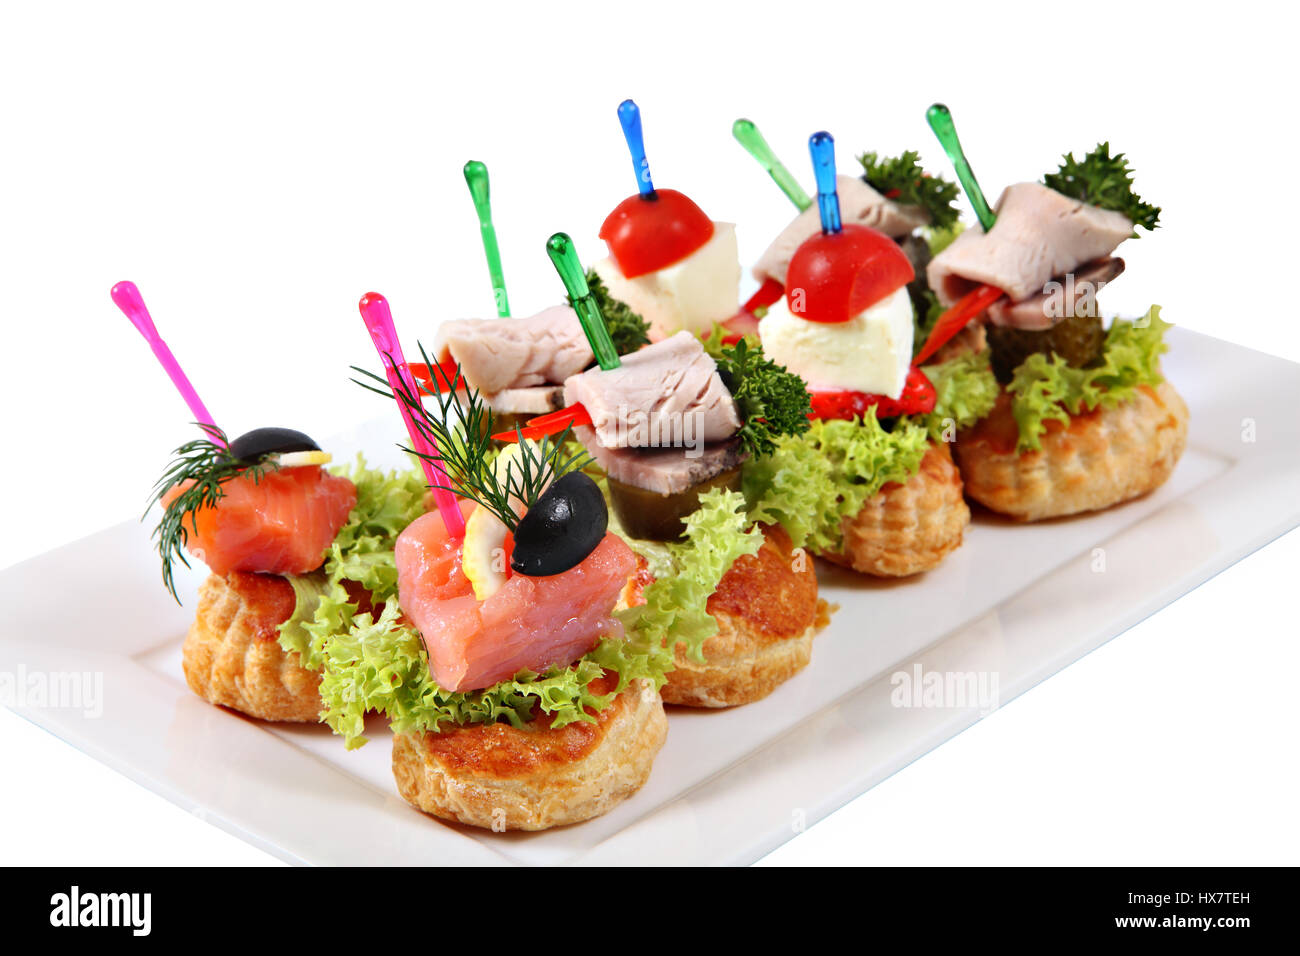 Many small canape sandwiches on colored plastic skewers put on a plate isolated on a white background.  sc 1 st  Alamy & Many small canape sandwiches on colored plastic skewers put on a ...